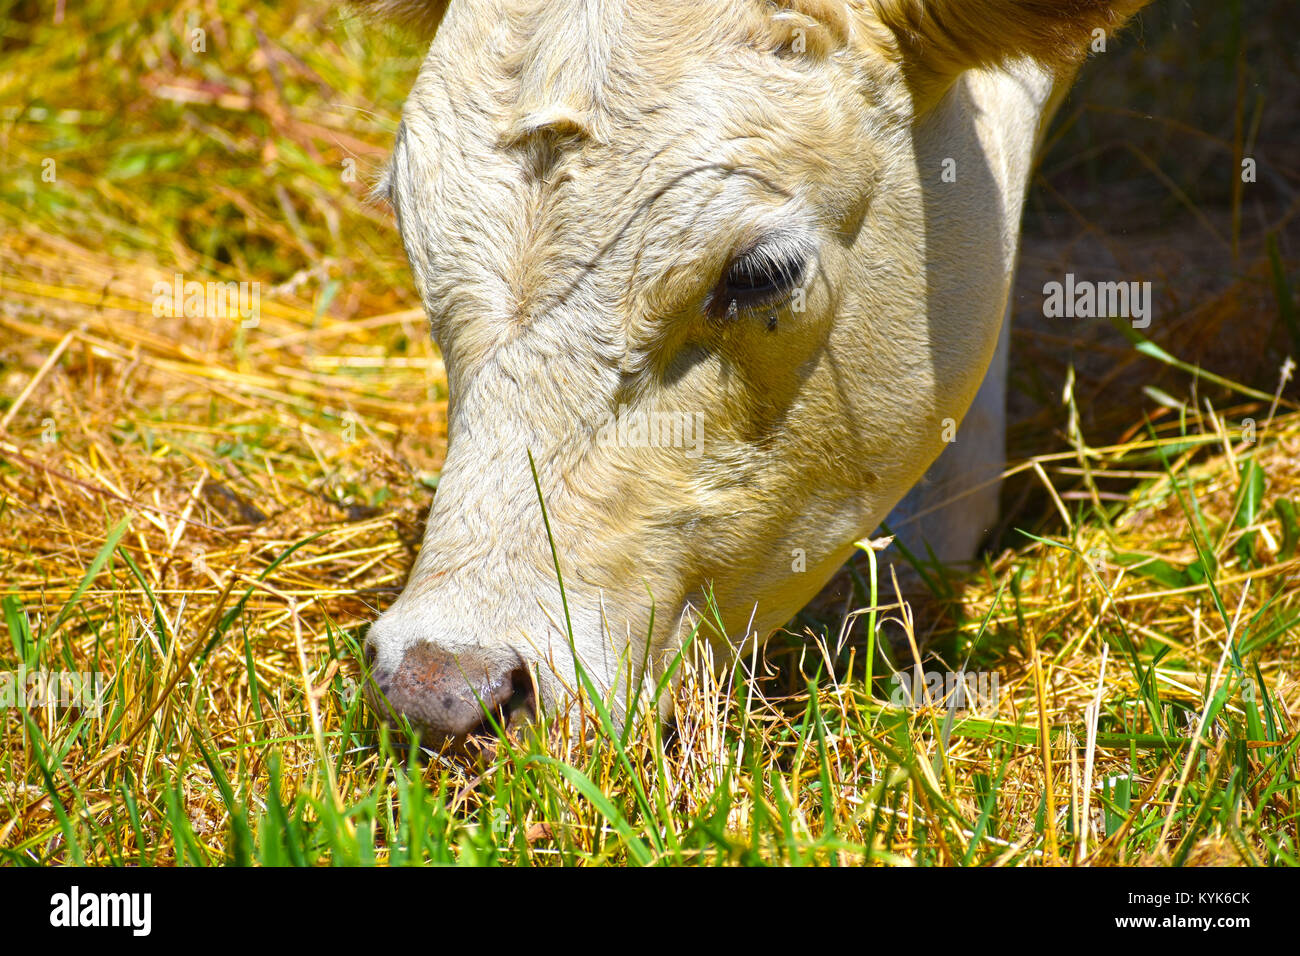 Cow grazing on grass closeup.  A fly is near the eye. Some grass shadows are on her face. - Stock Image